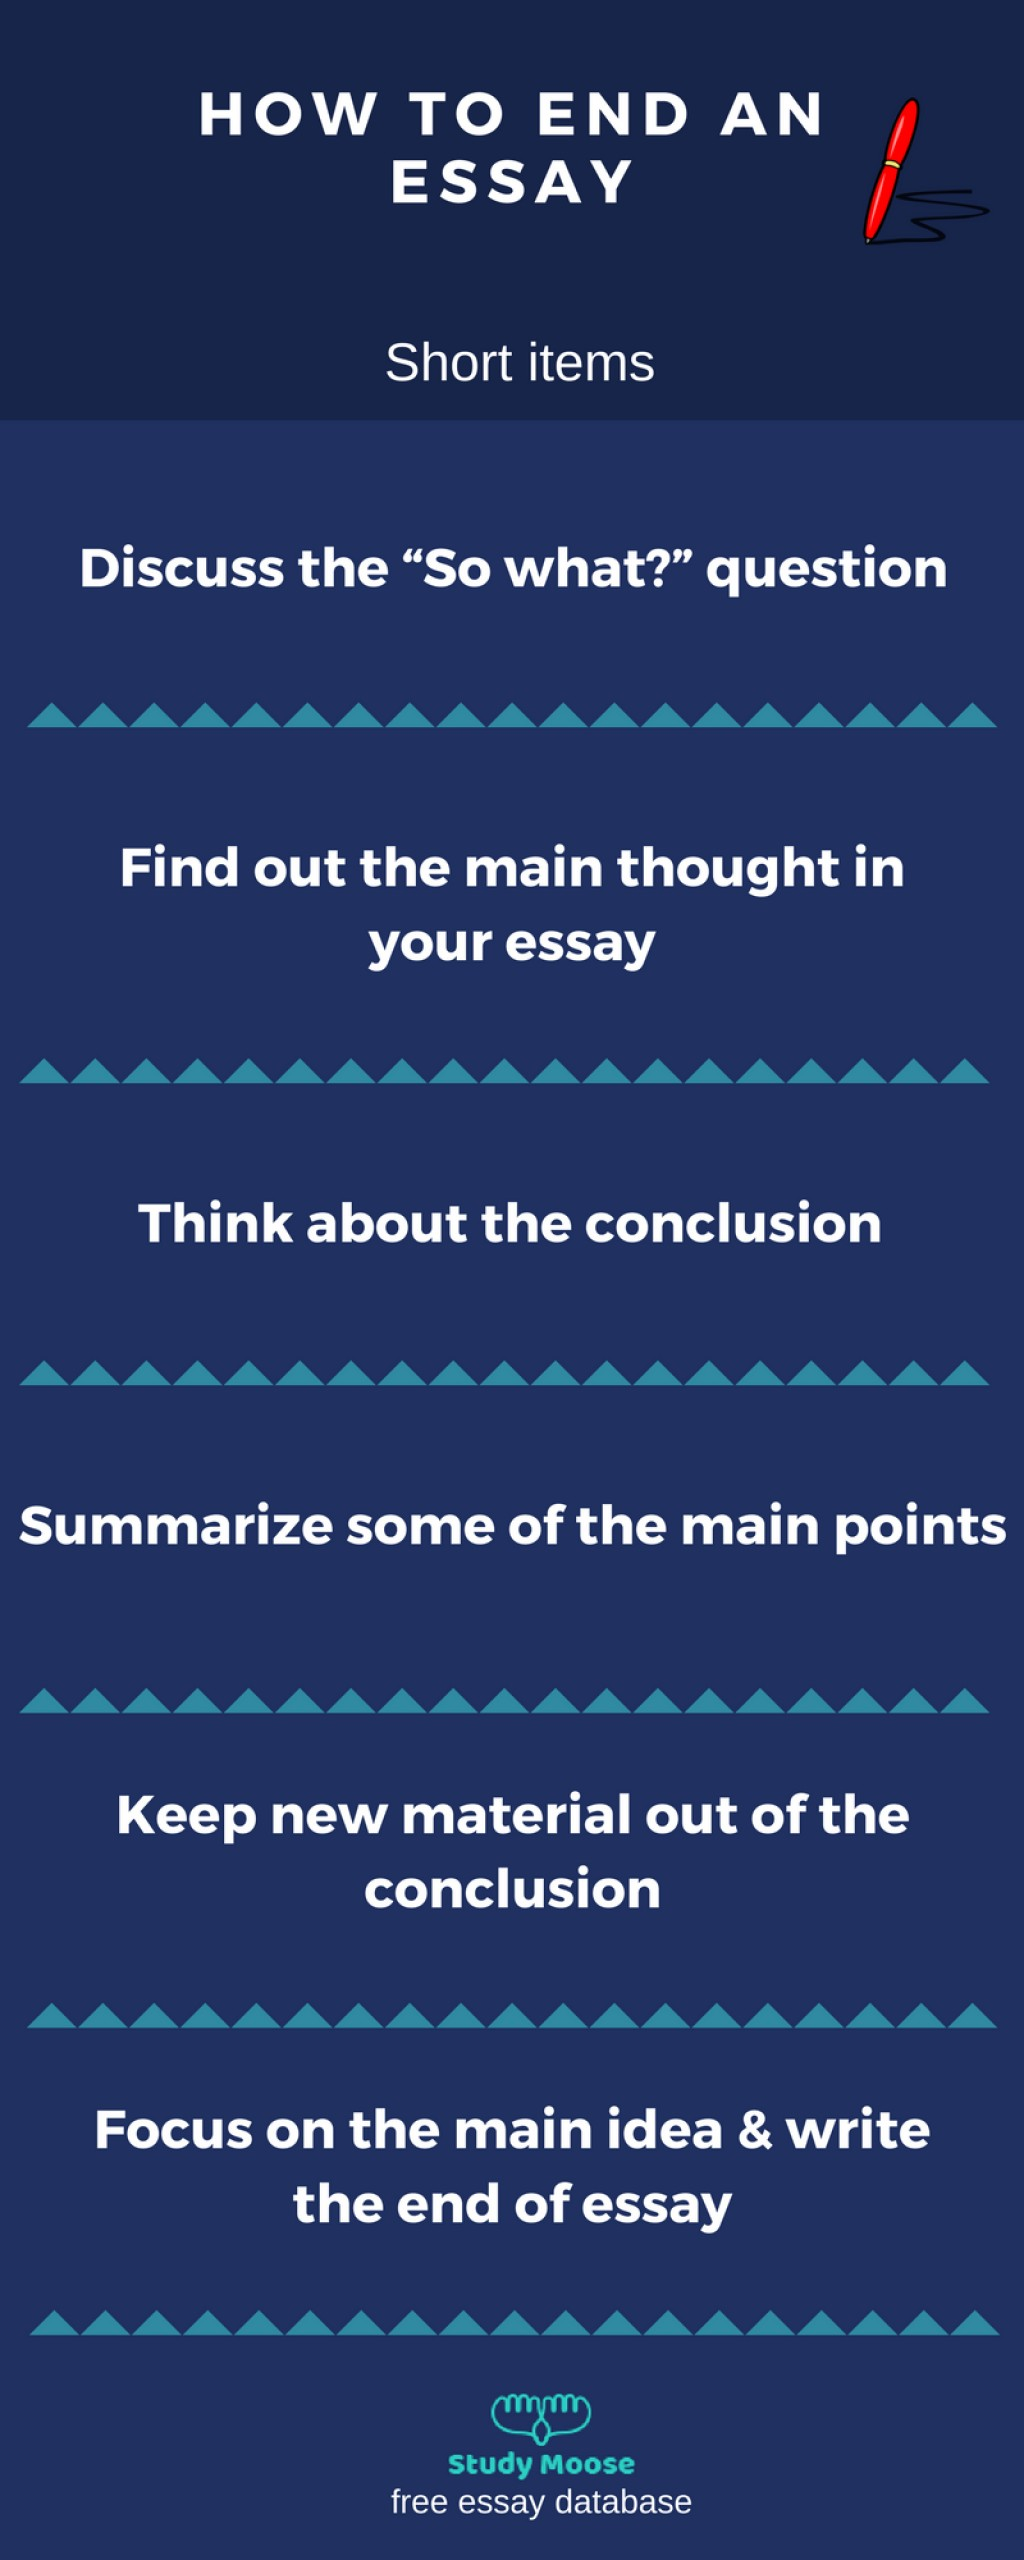 003 Essay Example Good Ways To End An Outstanding Best Way Argumentative How Opinion Large